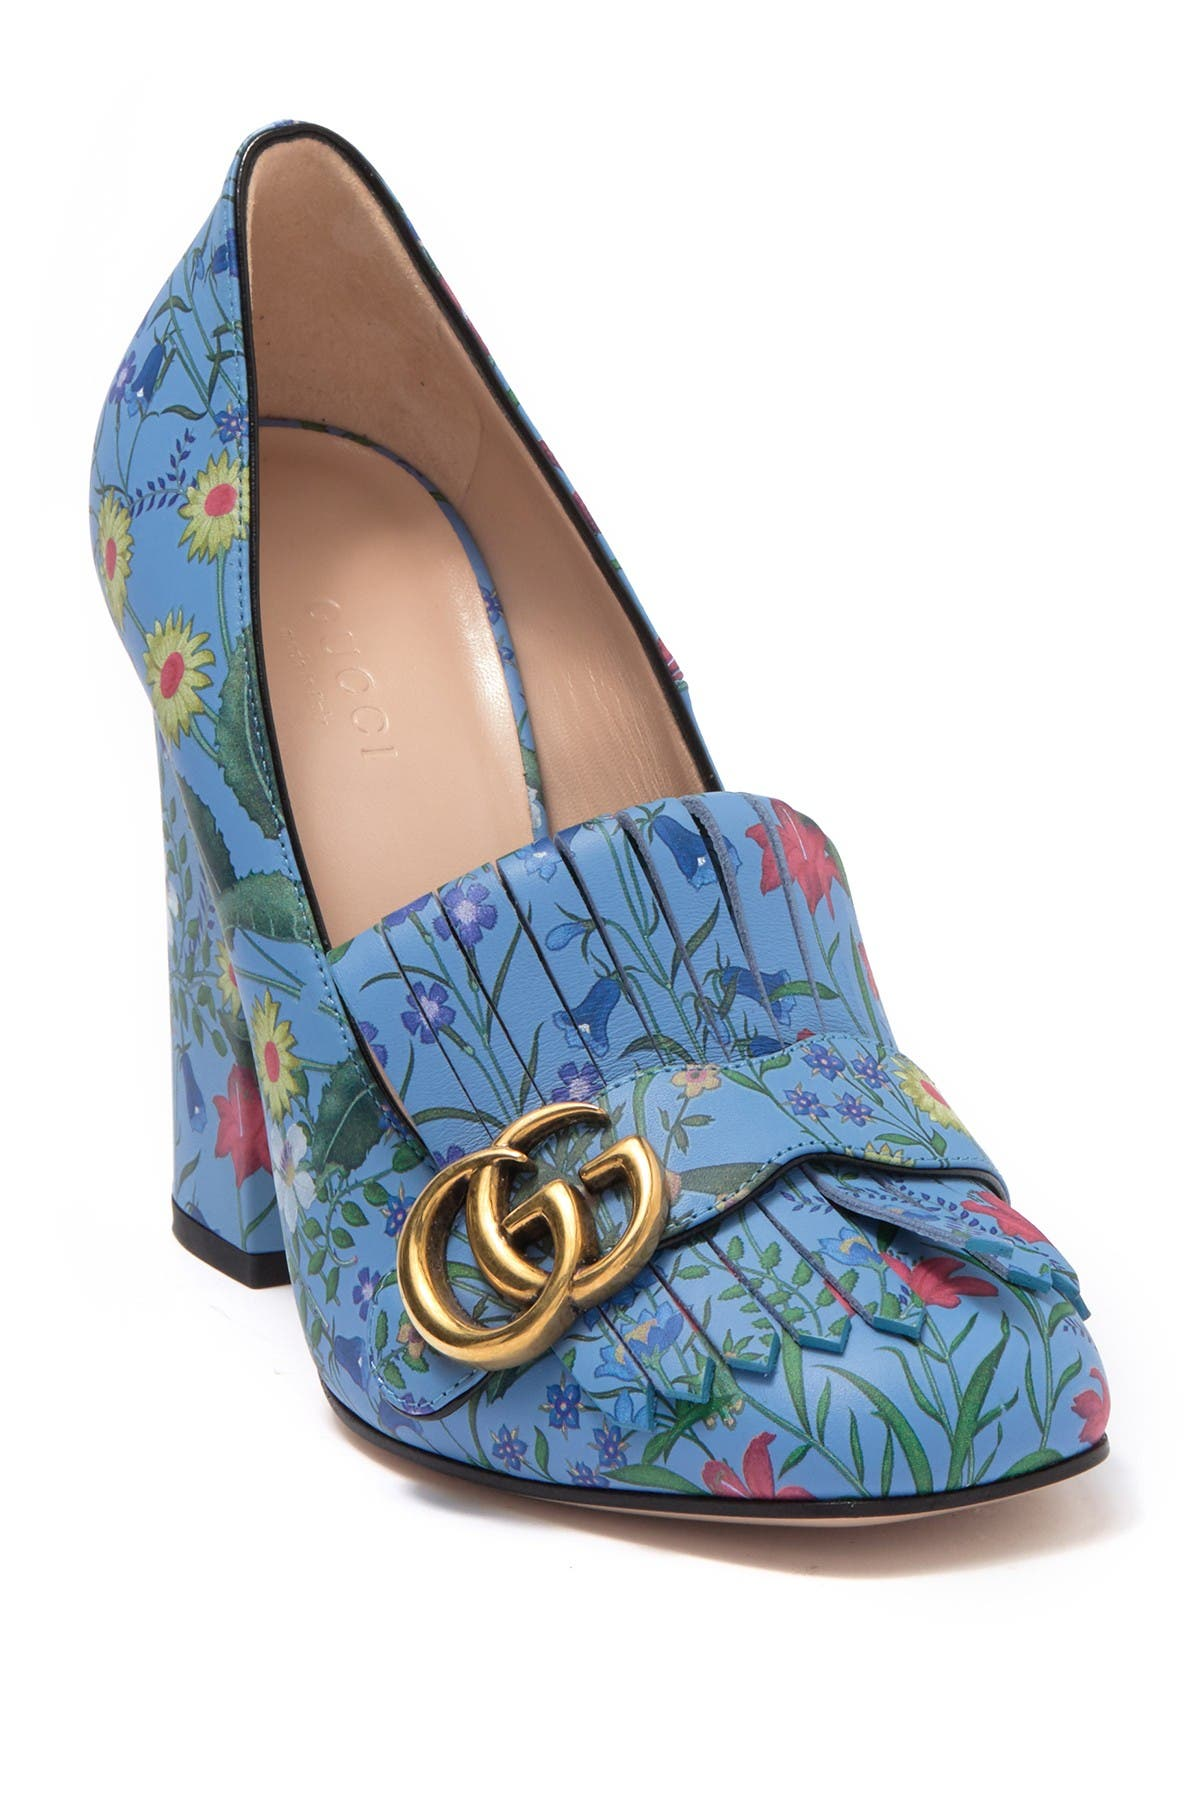 GUCCI   Floral Leather Logo Fringed